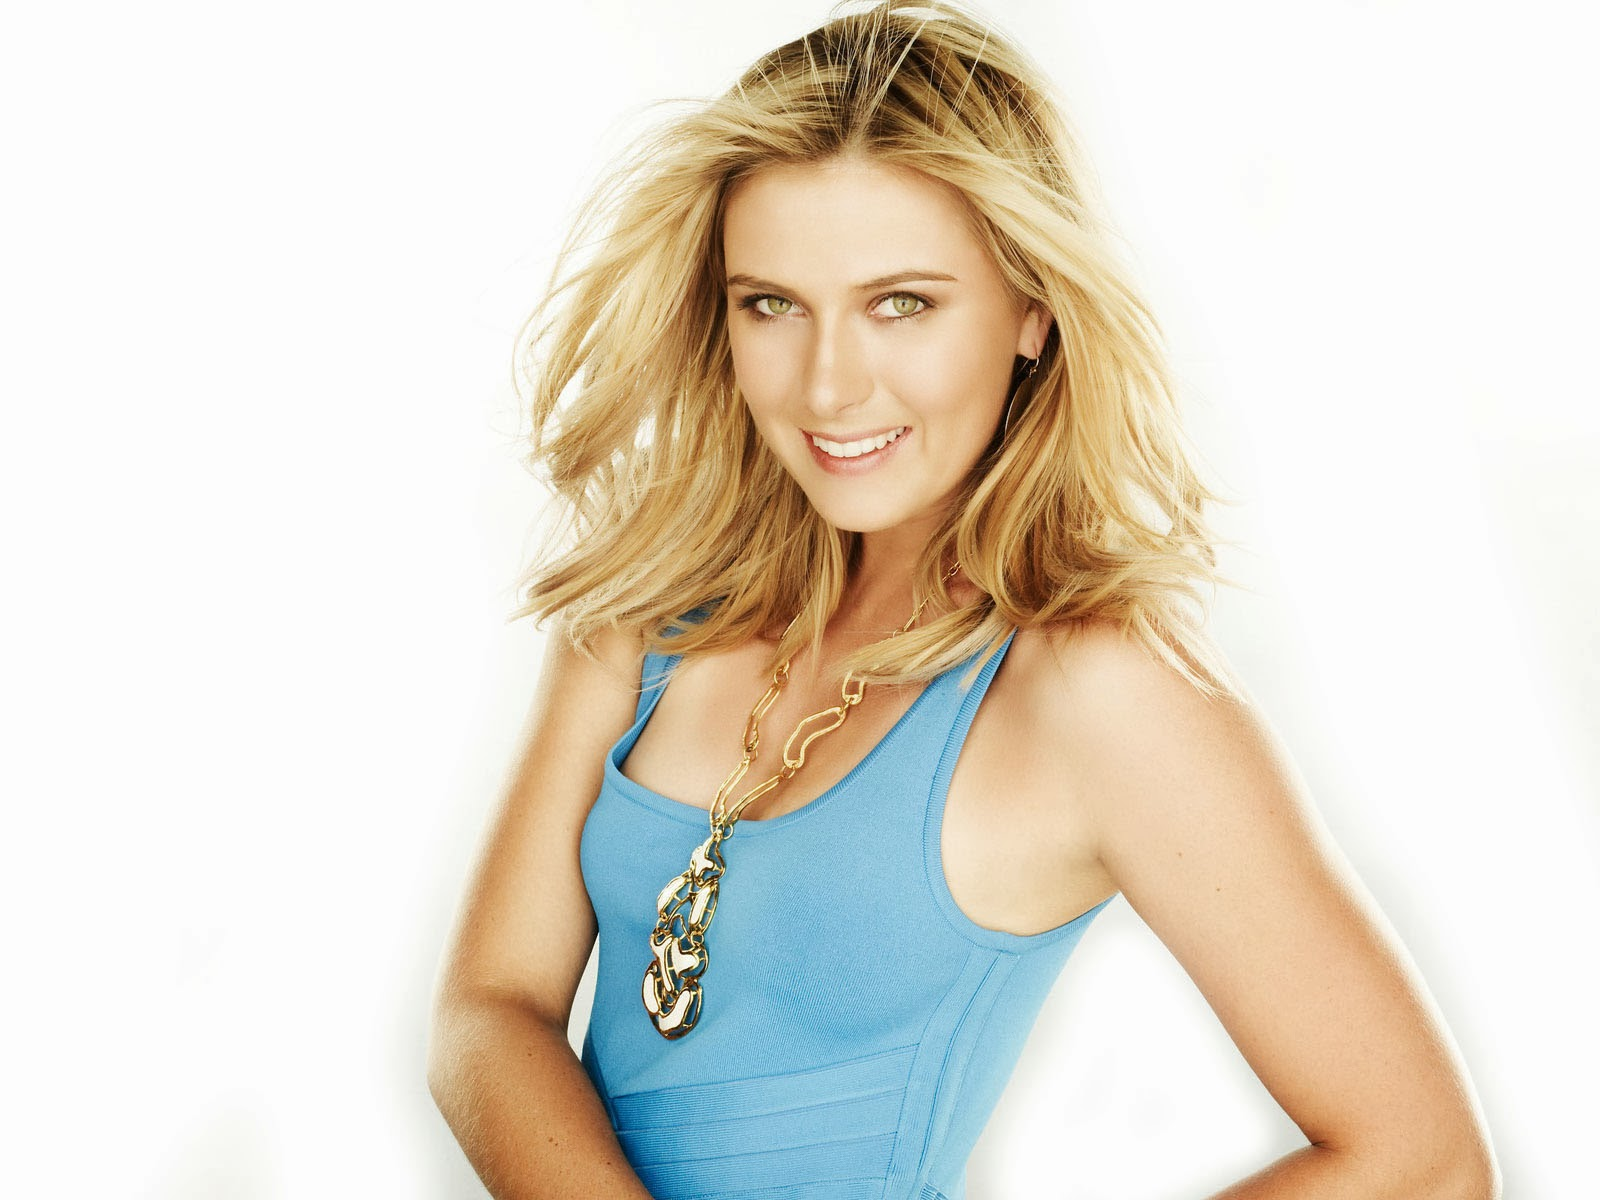 Clovisso Wallpaper Gallery Maria Sharapova Desktop Backgrounds 1600x1200